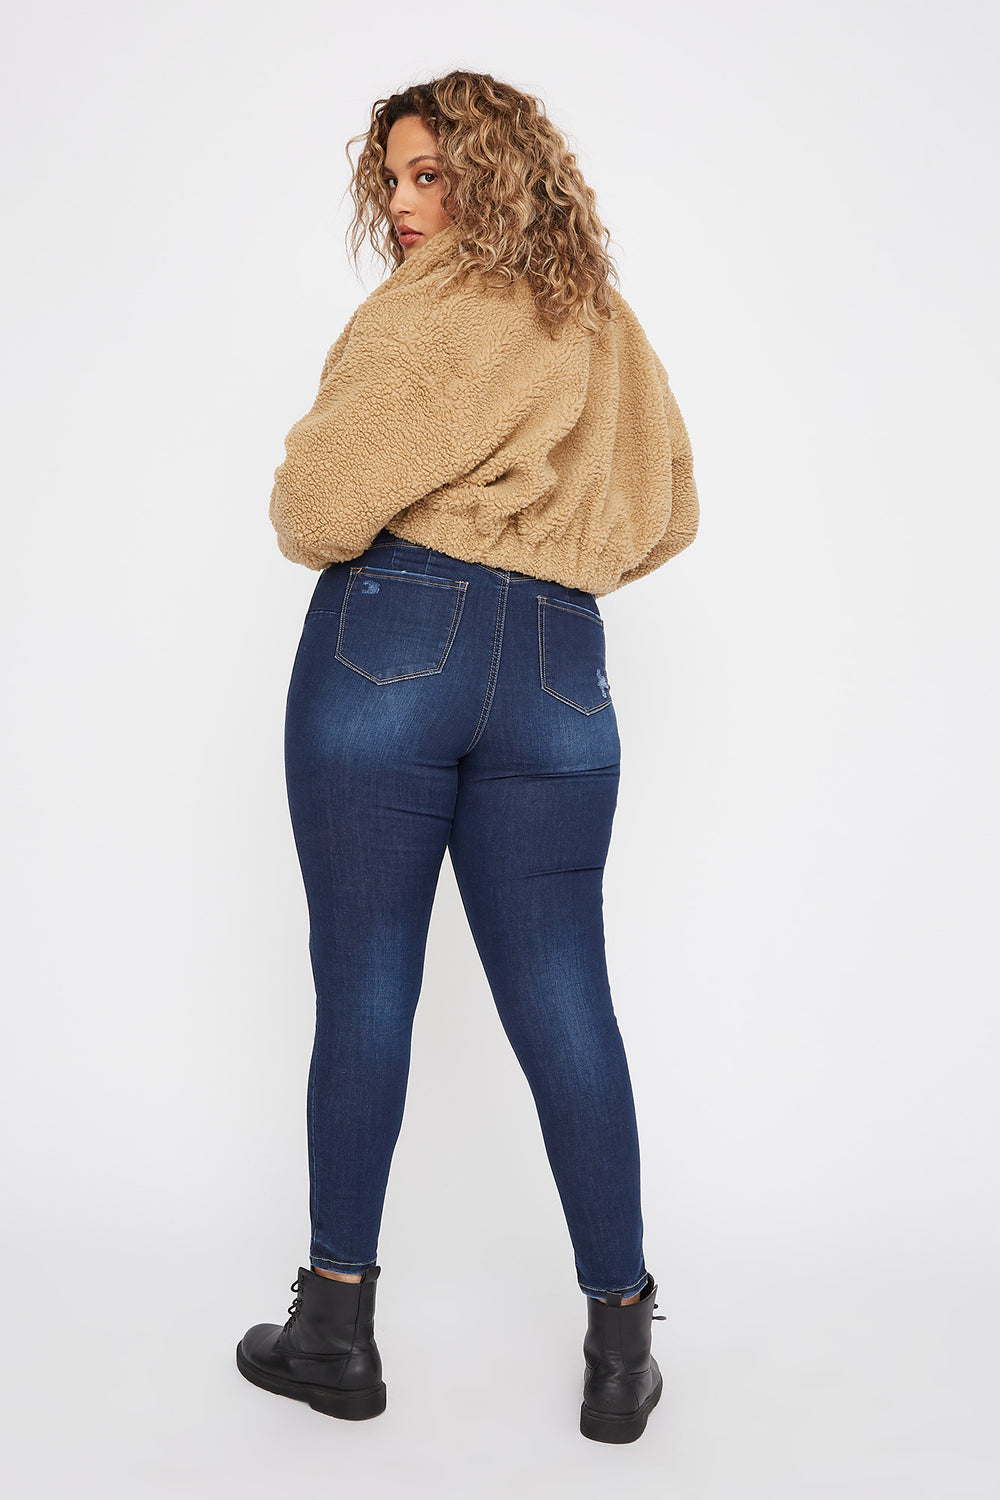 Plus Size Butt, I Love You High-Rise Distressed Push-Up Skinny Jean Dark Blue